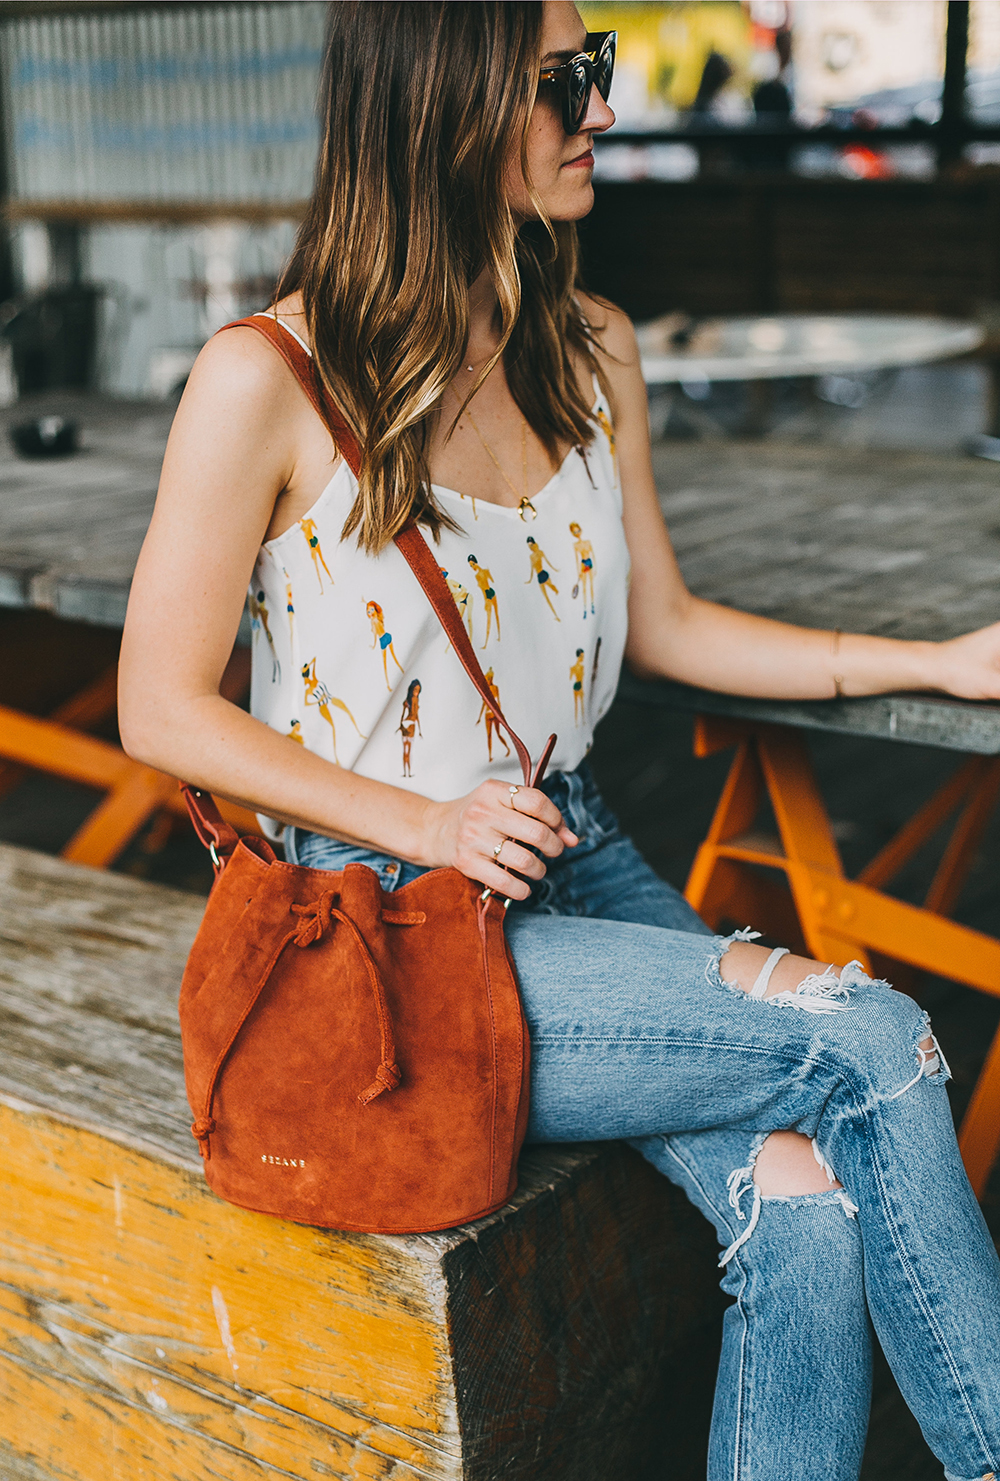 livvyland-blog-olivia-watson-austin-texas-fashion-blogger-sezane-bucket-bag-rust-suede-jos-coffee-silk-satin-tank-top-9